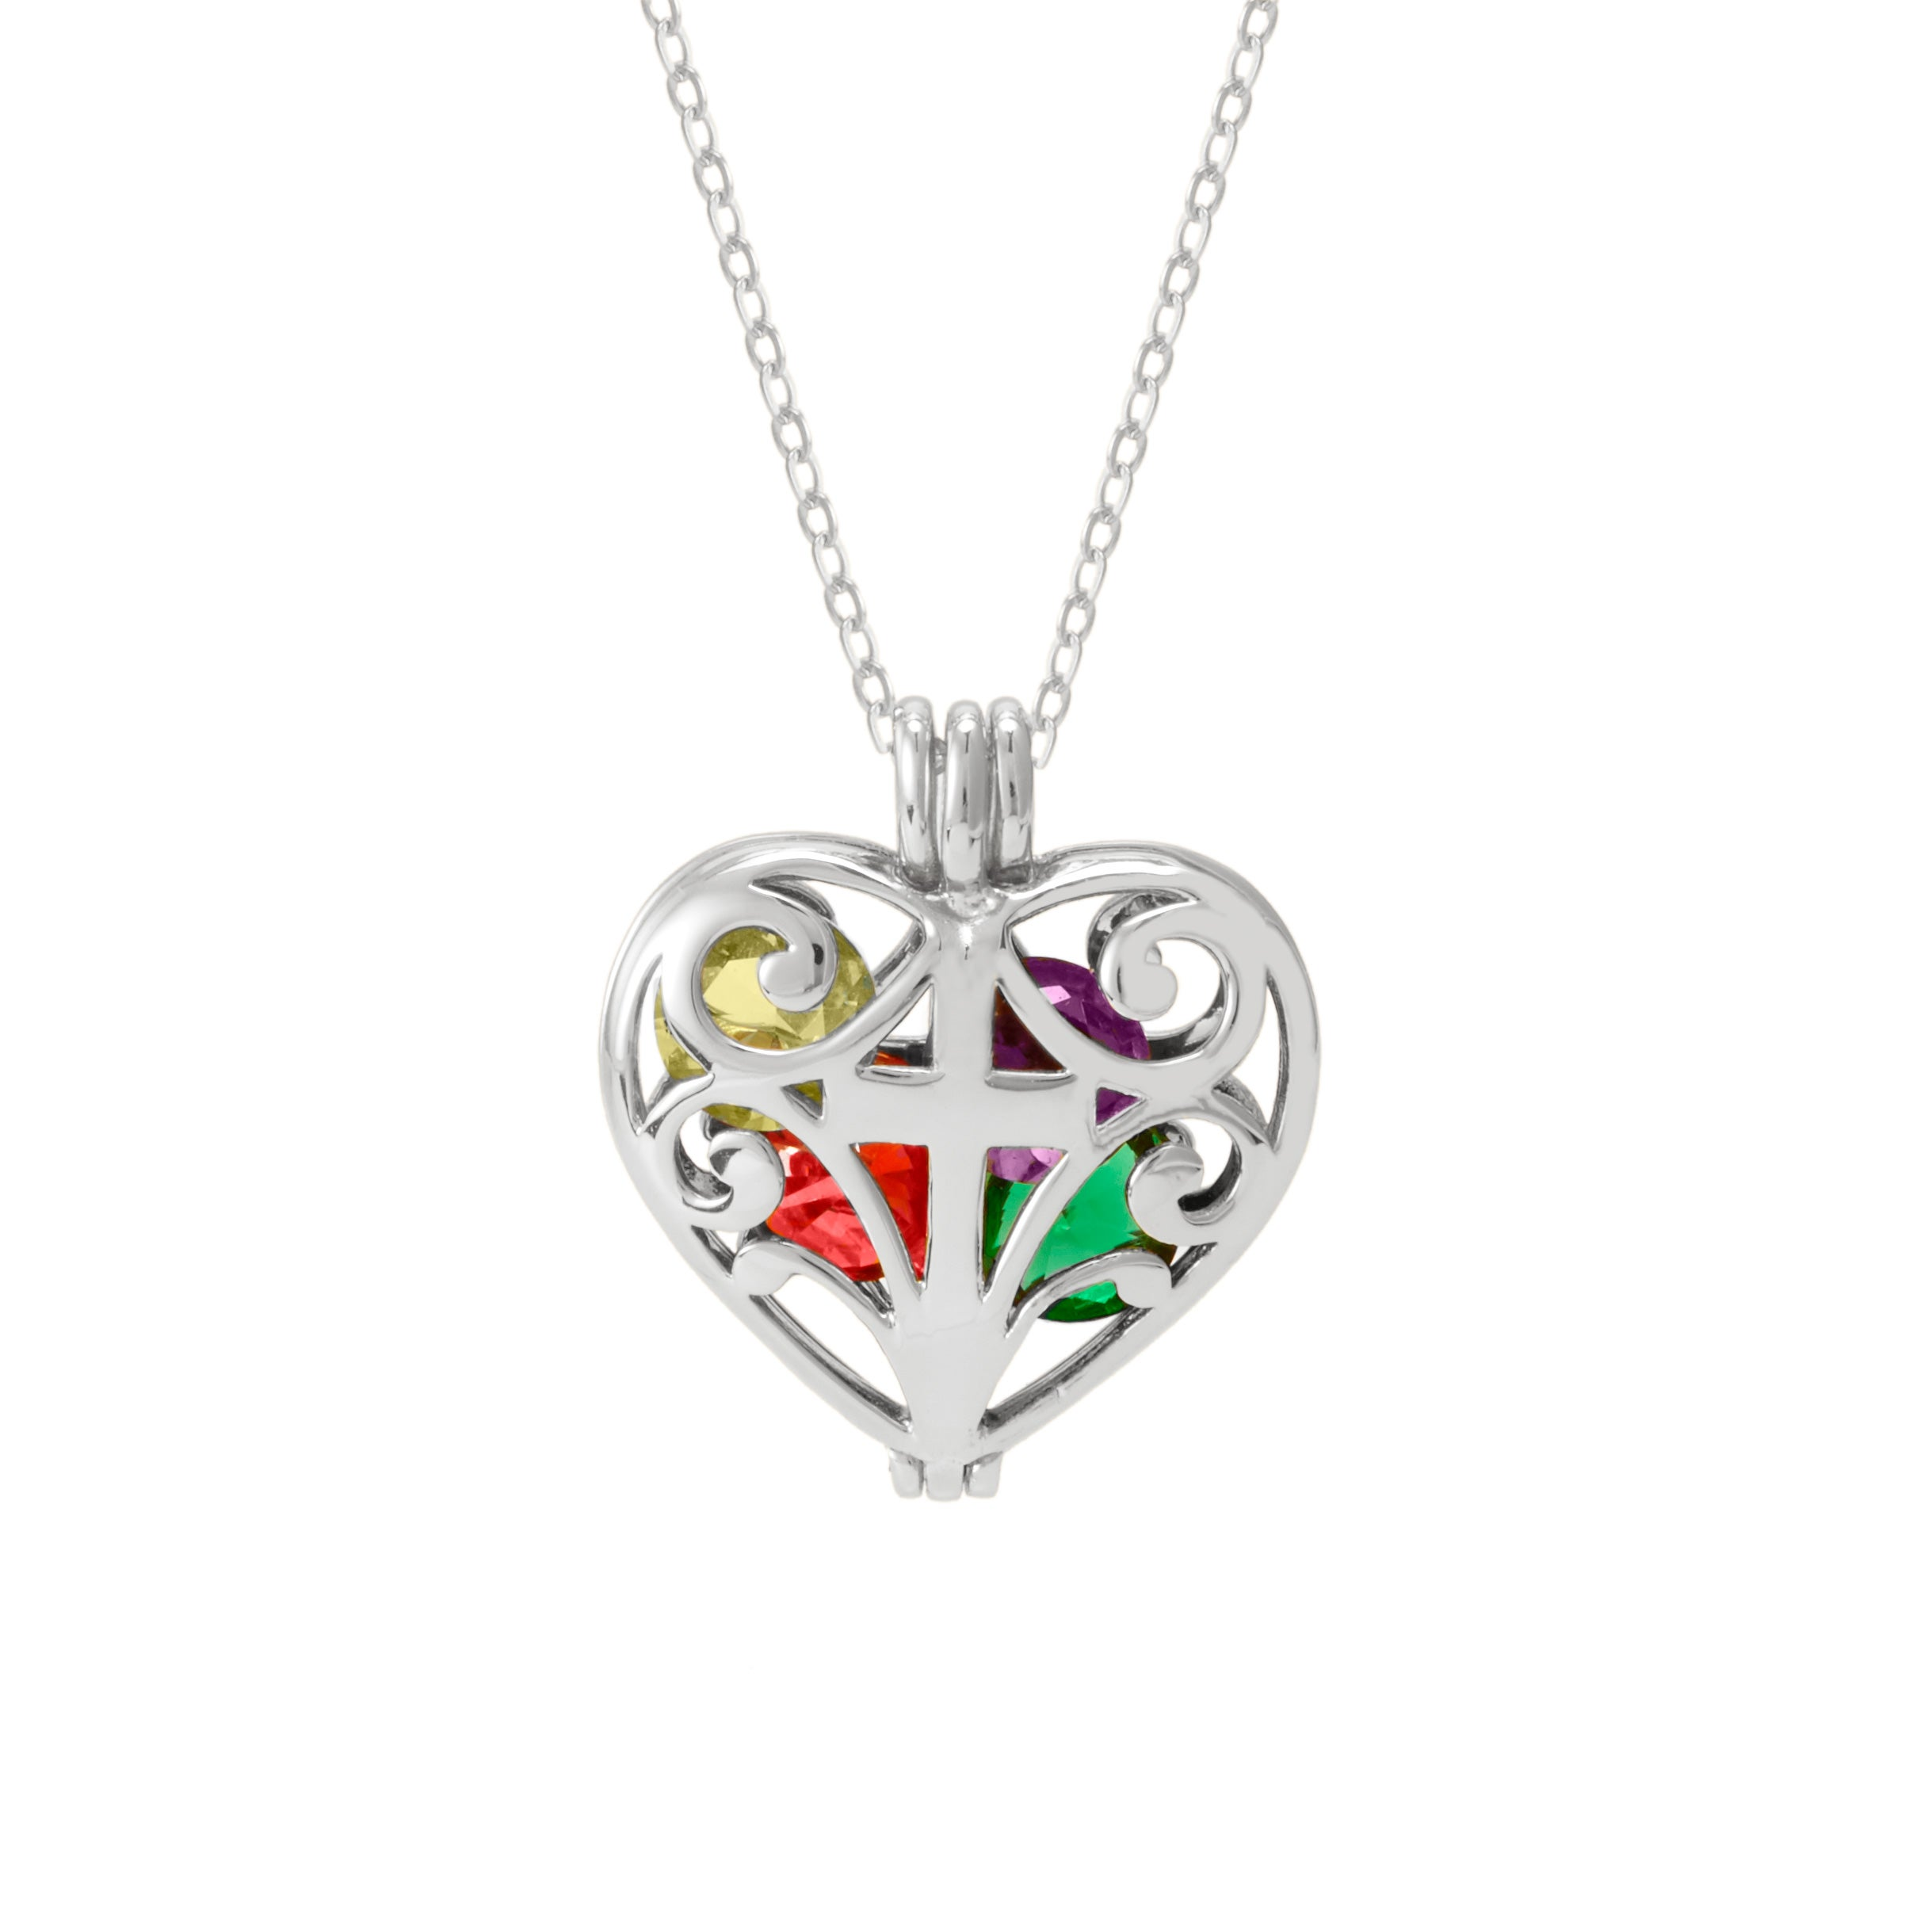 zoom birthstones birthstone with heart name kids grandkid hqgi fullxfull necklace listing il mothers